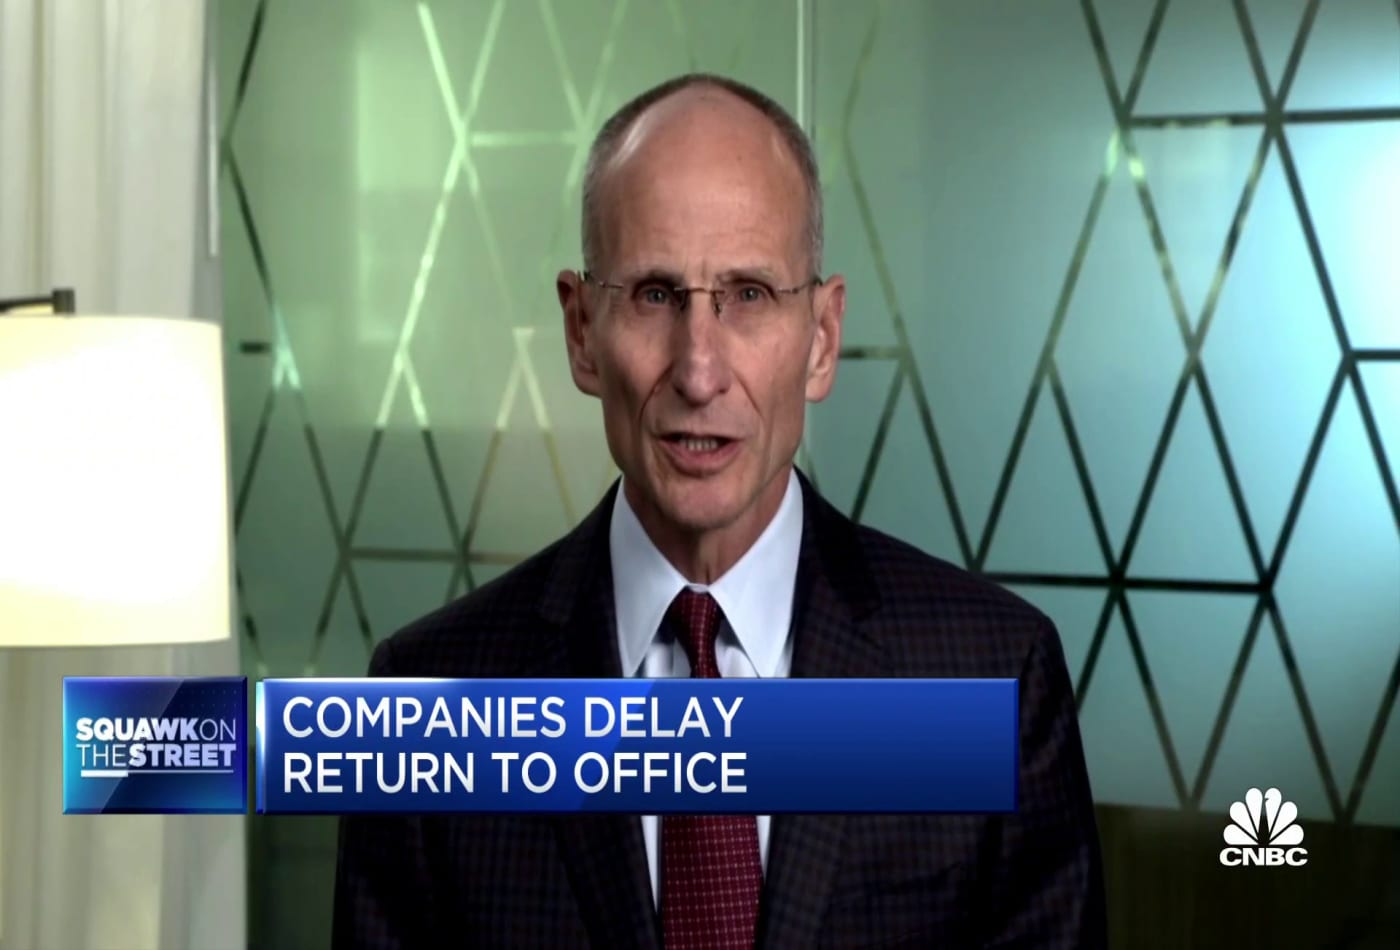 CBRE CEO on return to office: Plans are getting pushed back